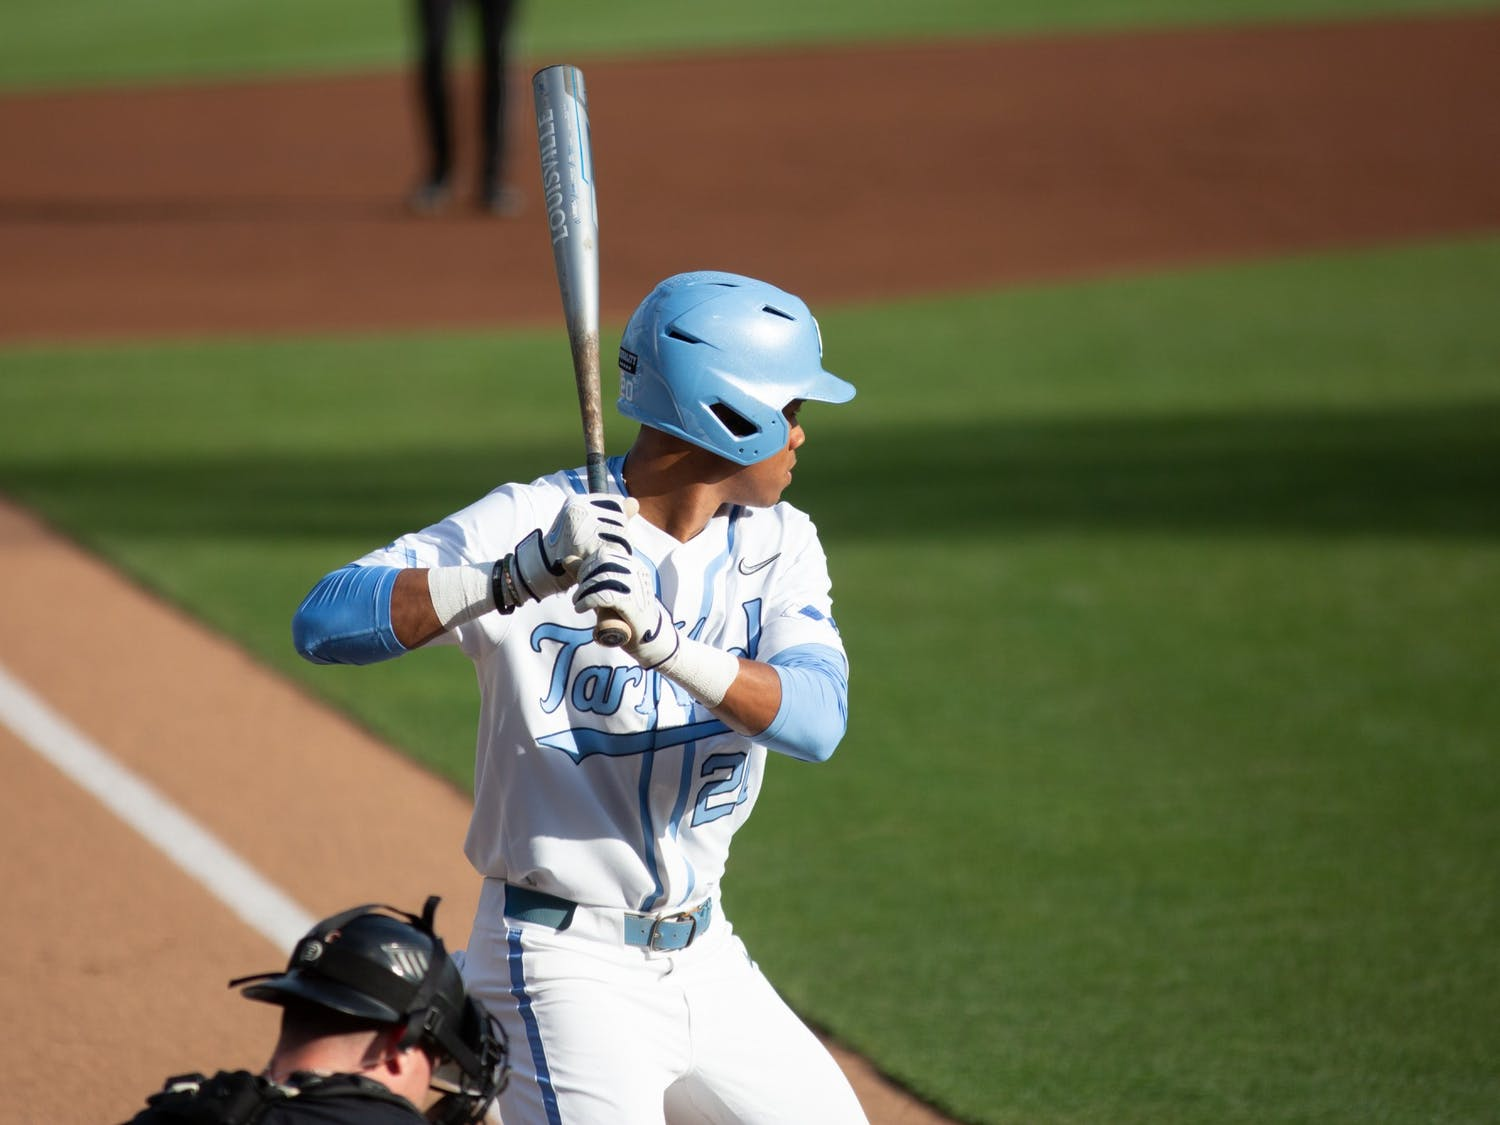 Sophomore outfielder Justice Thompson (20) stands at bat in a game against Louisville on Friday, May 14, 2021. The Tar Heels beat the Cardinals 5-1.